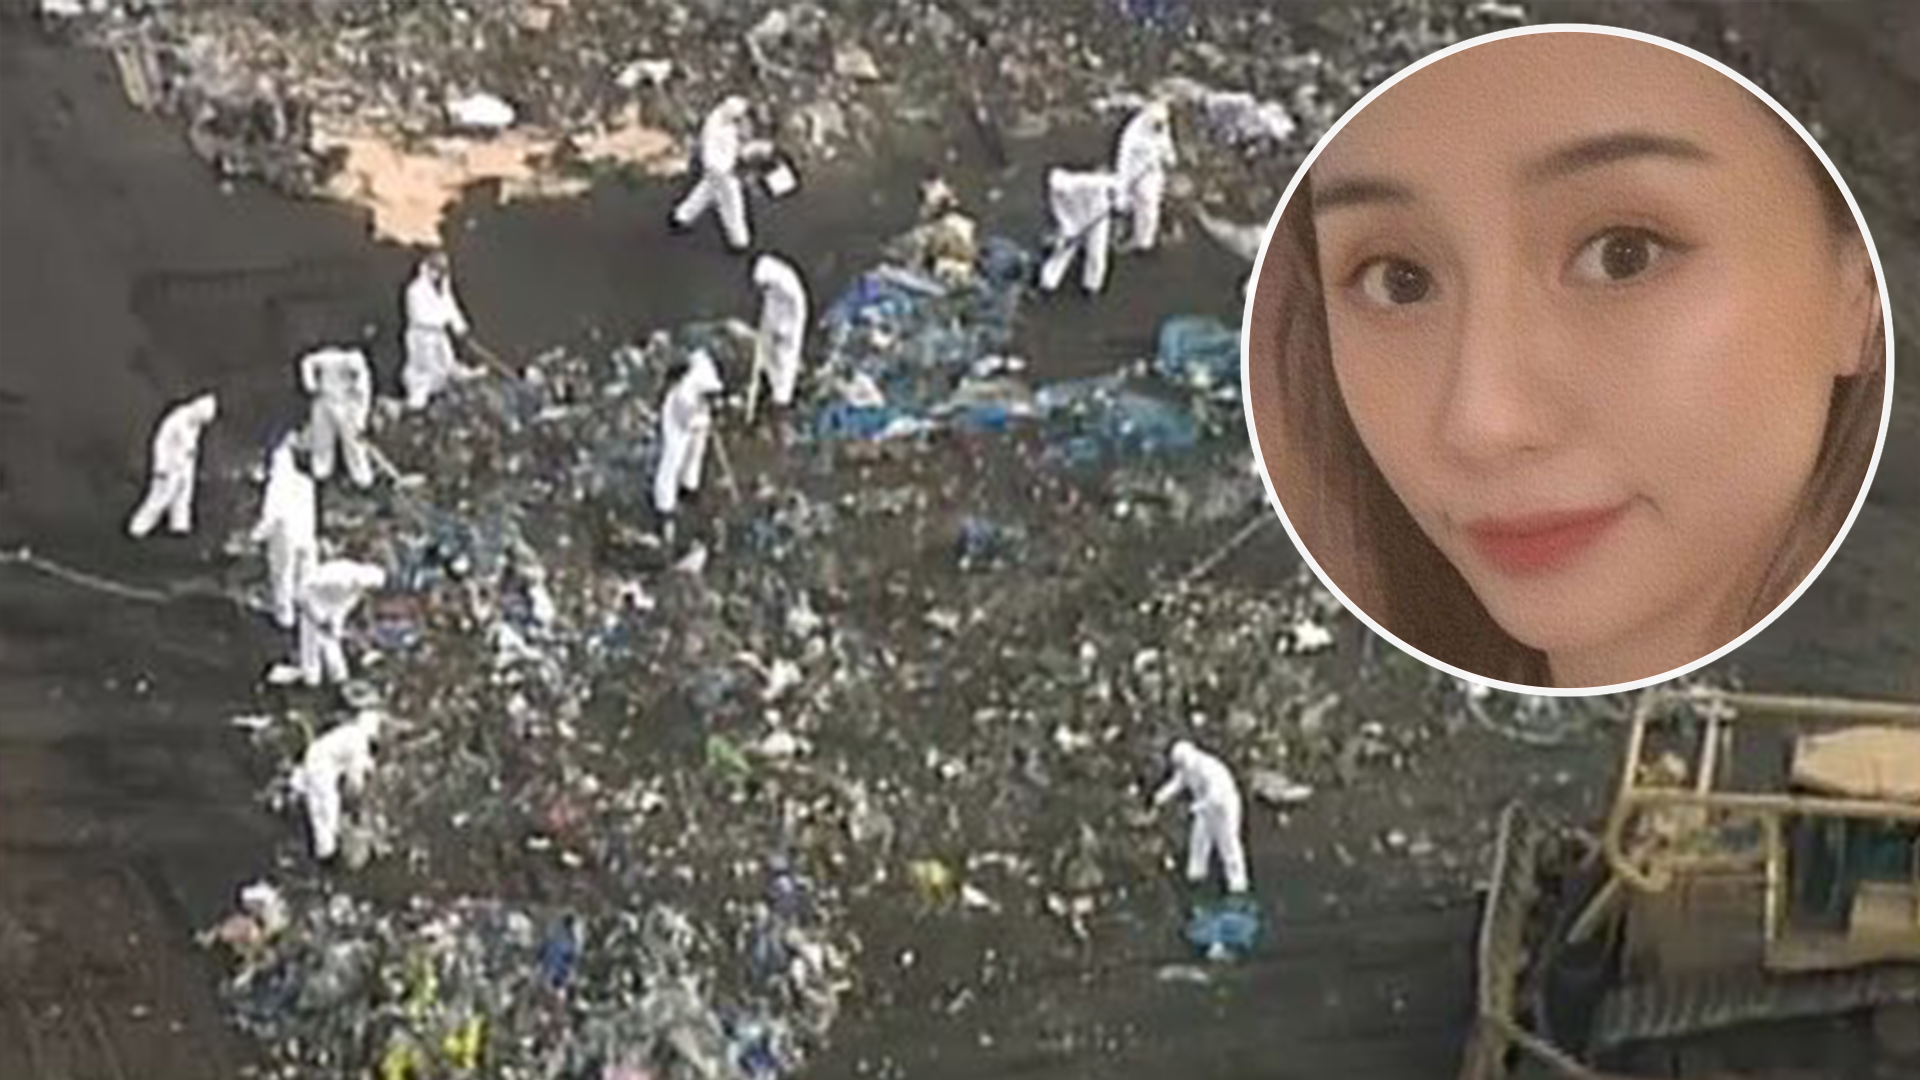 Human remains found in search for missing woman, Kelly 'Ju' Zhang